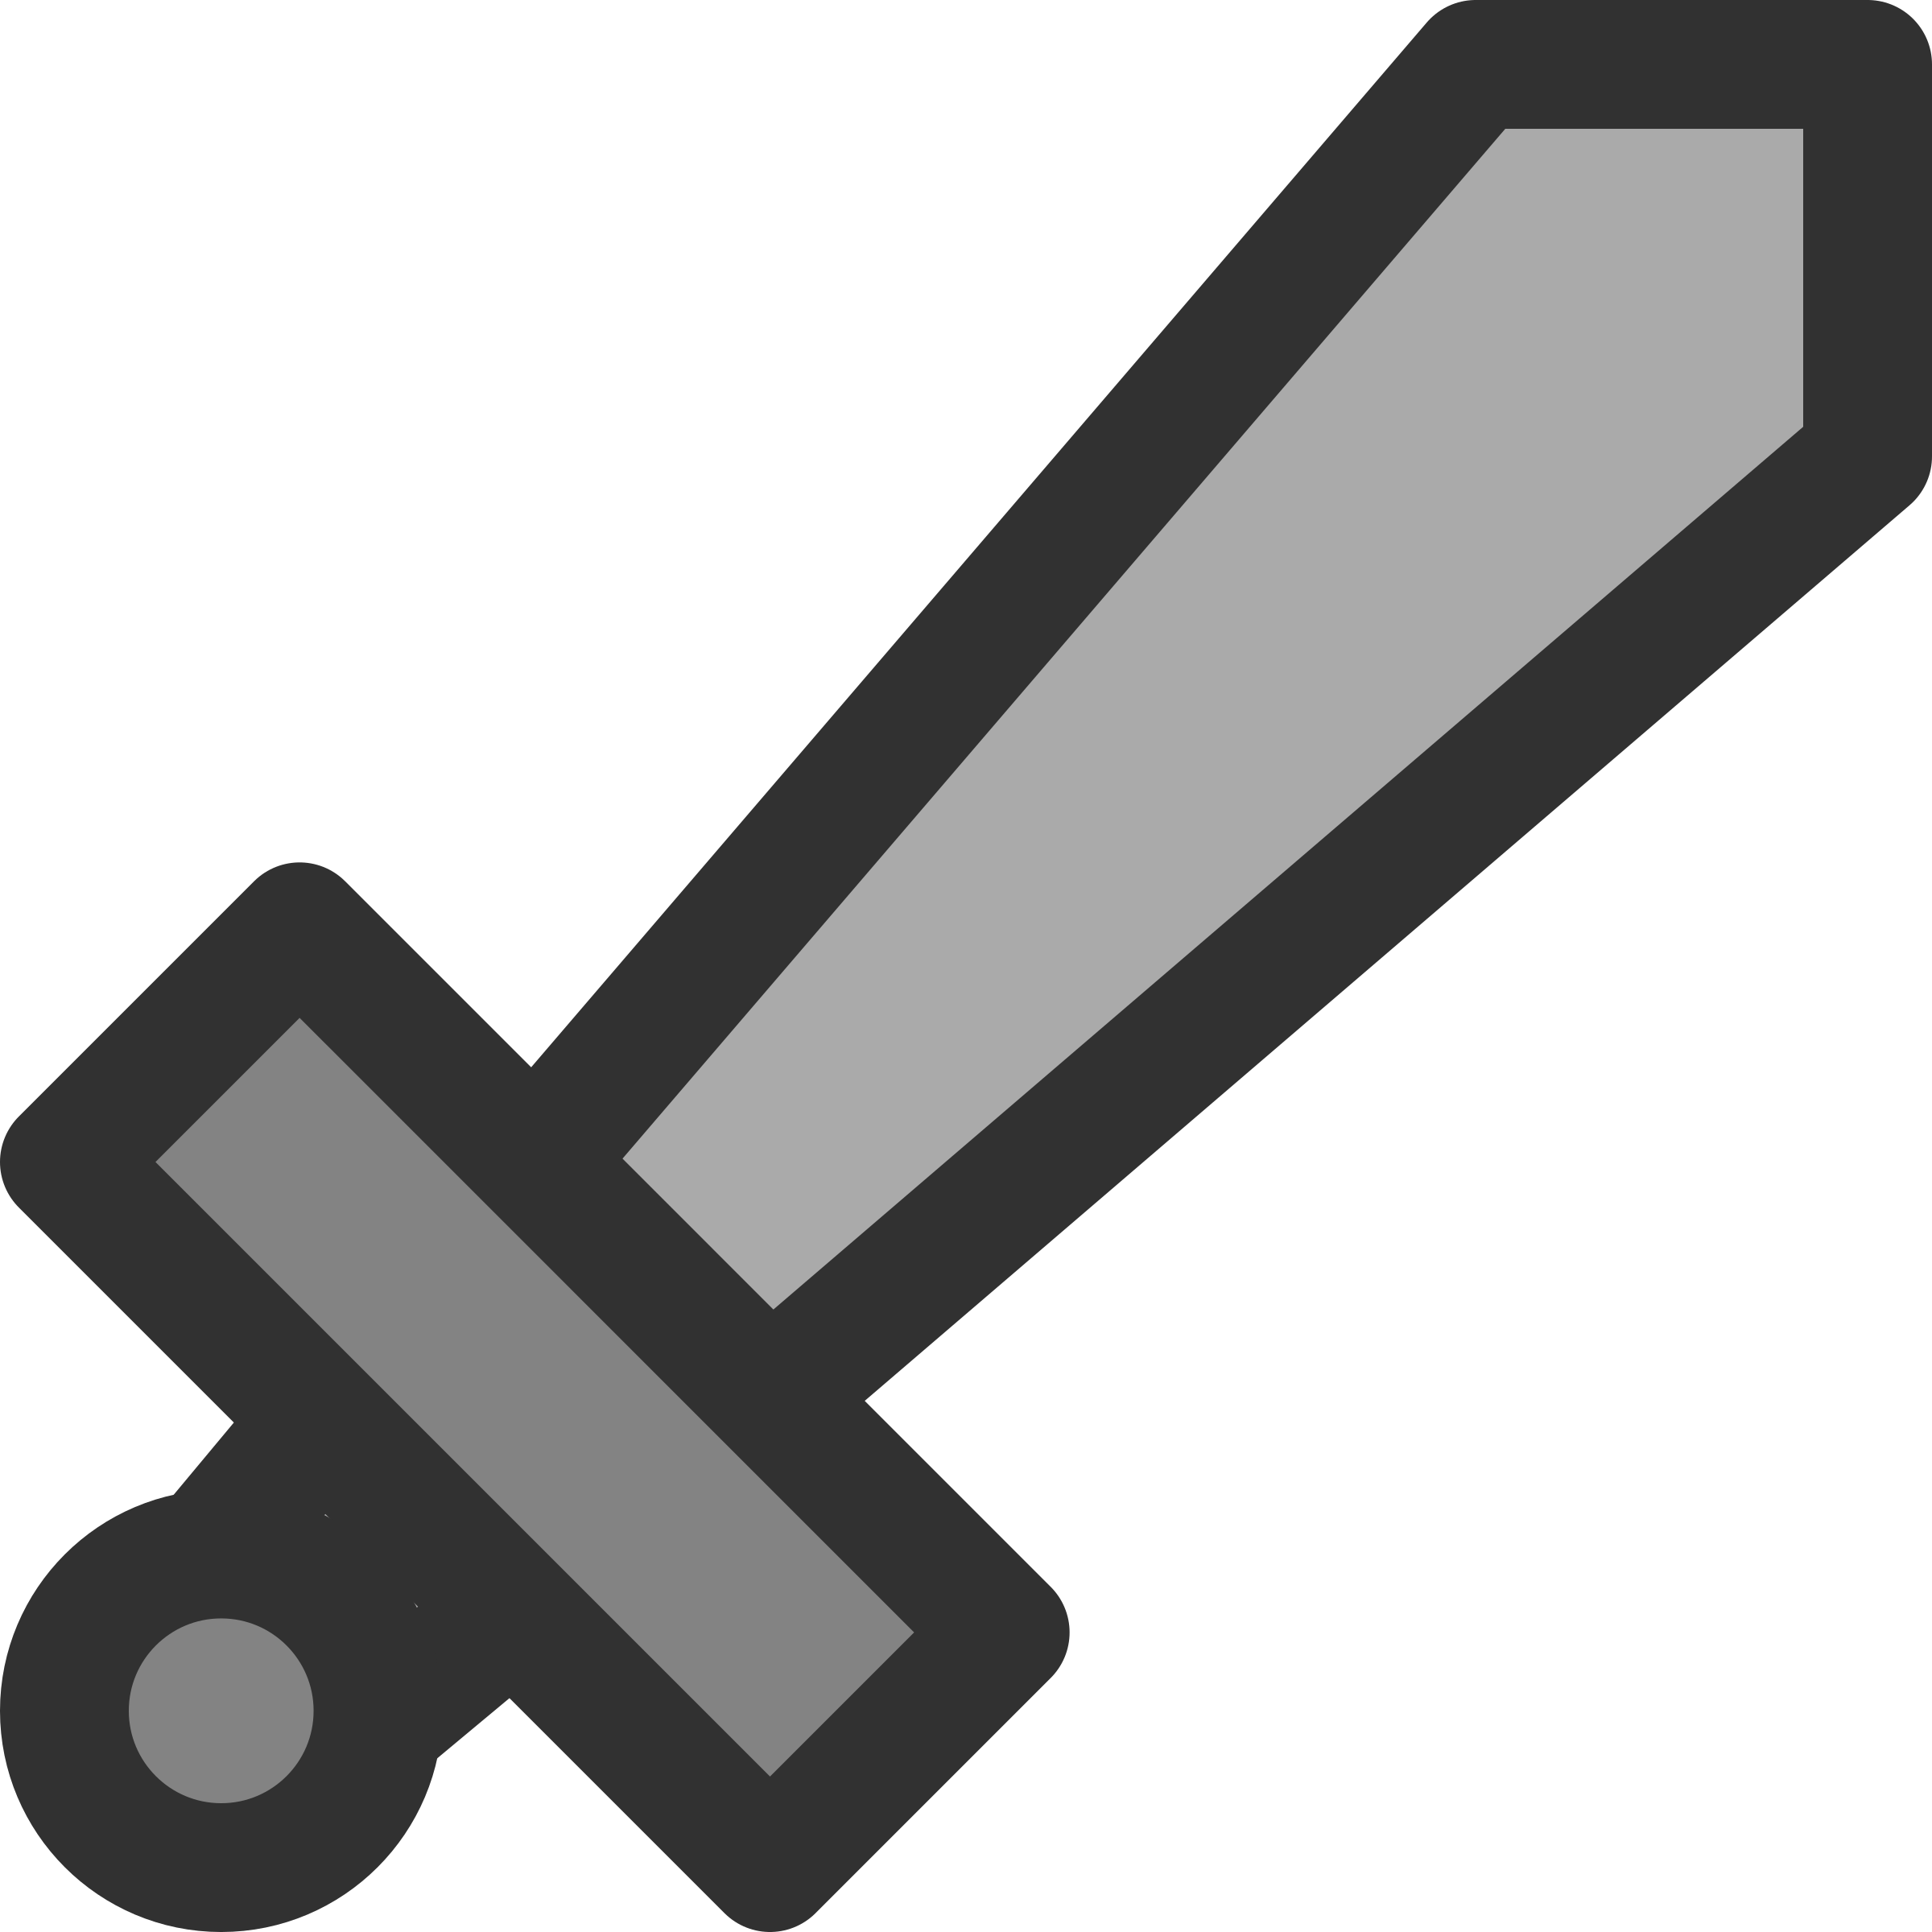 Metal Sword Icon by qubodup